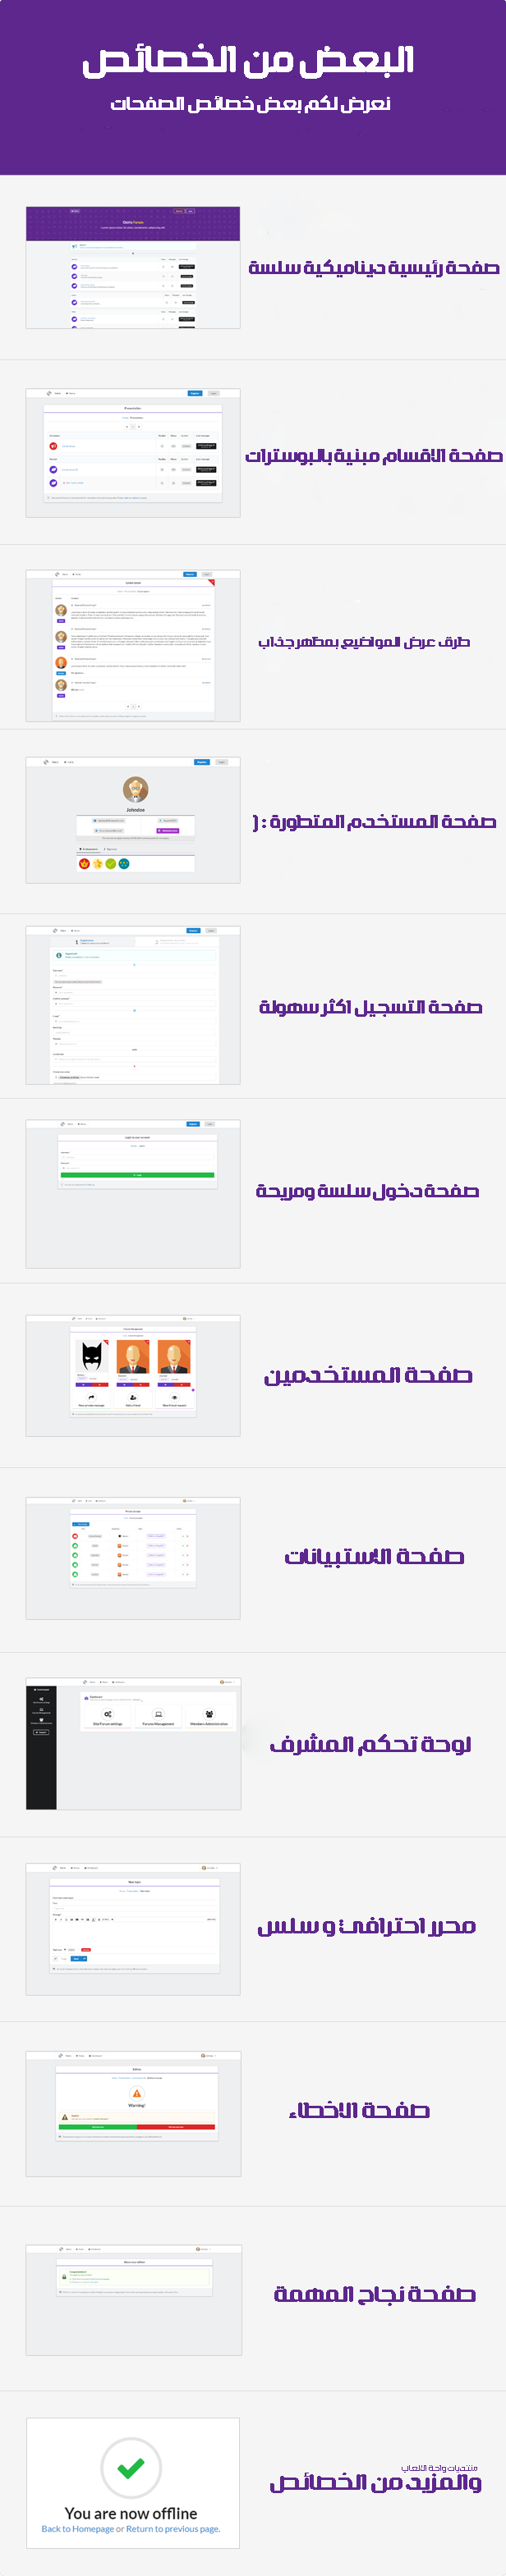 المنتديات Semantic Forum SDG9F.png